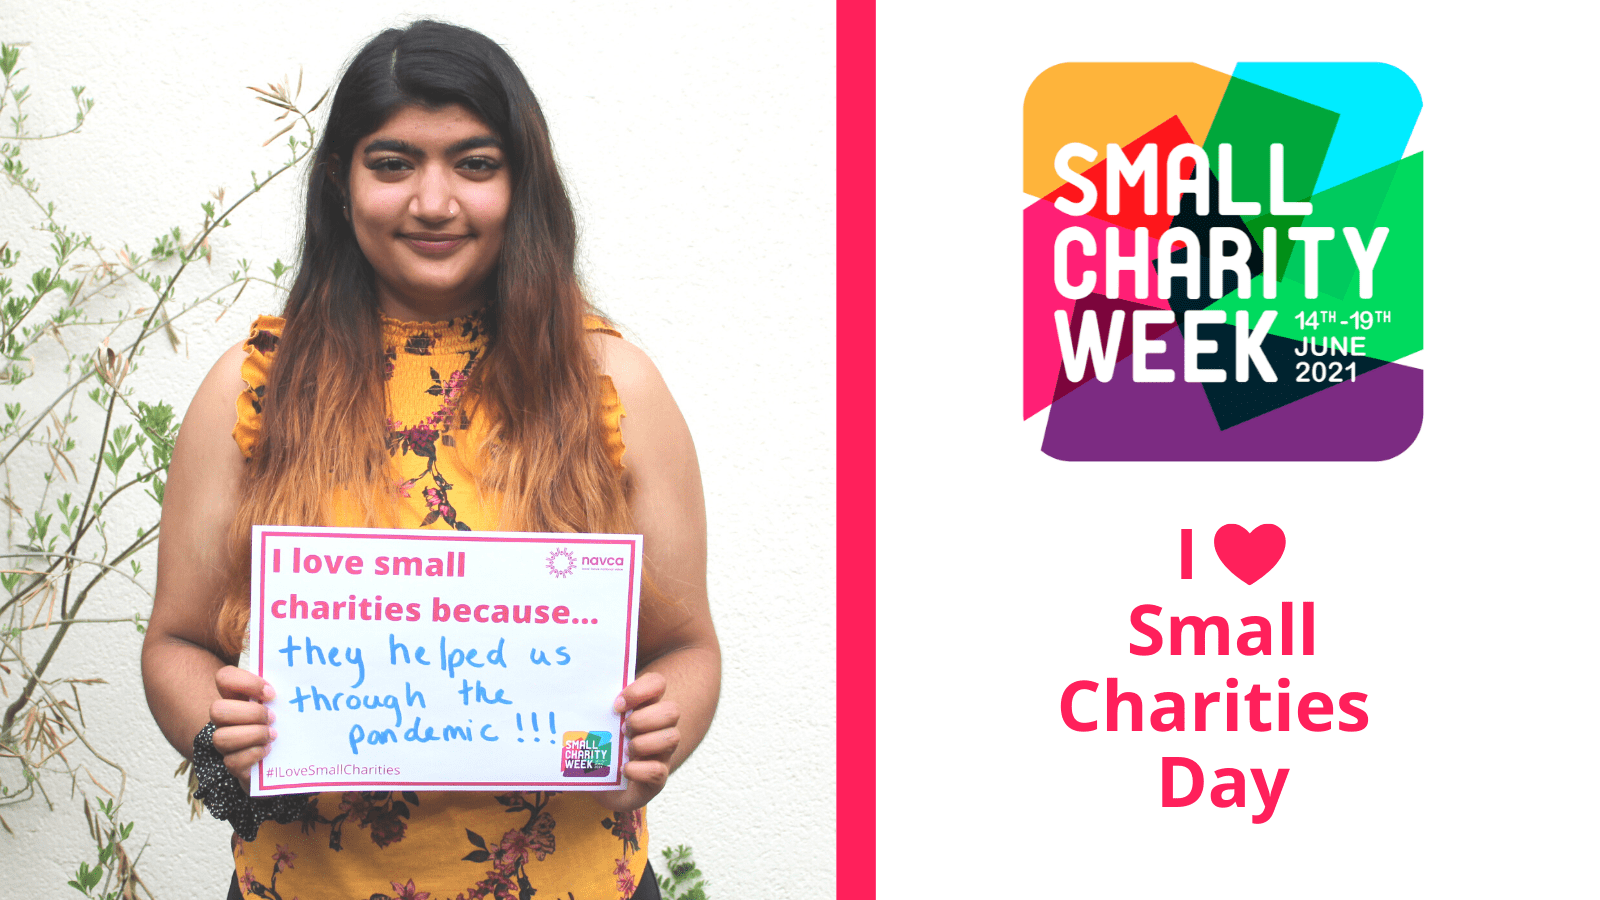 Asian female with long brown hair holding an a4 piece of paper which reads: I love small charities because... they helped us through the pandemic!!! In the background is a plain wall and a small tree. Small Charity Week logo 14-21 June 2021. I heart small charities day.